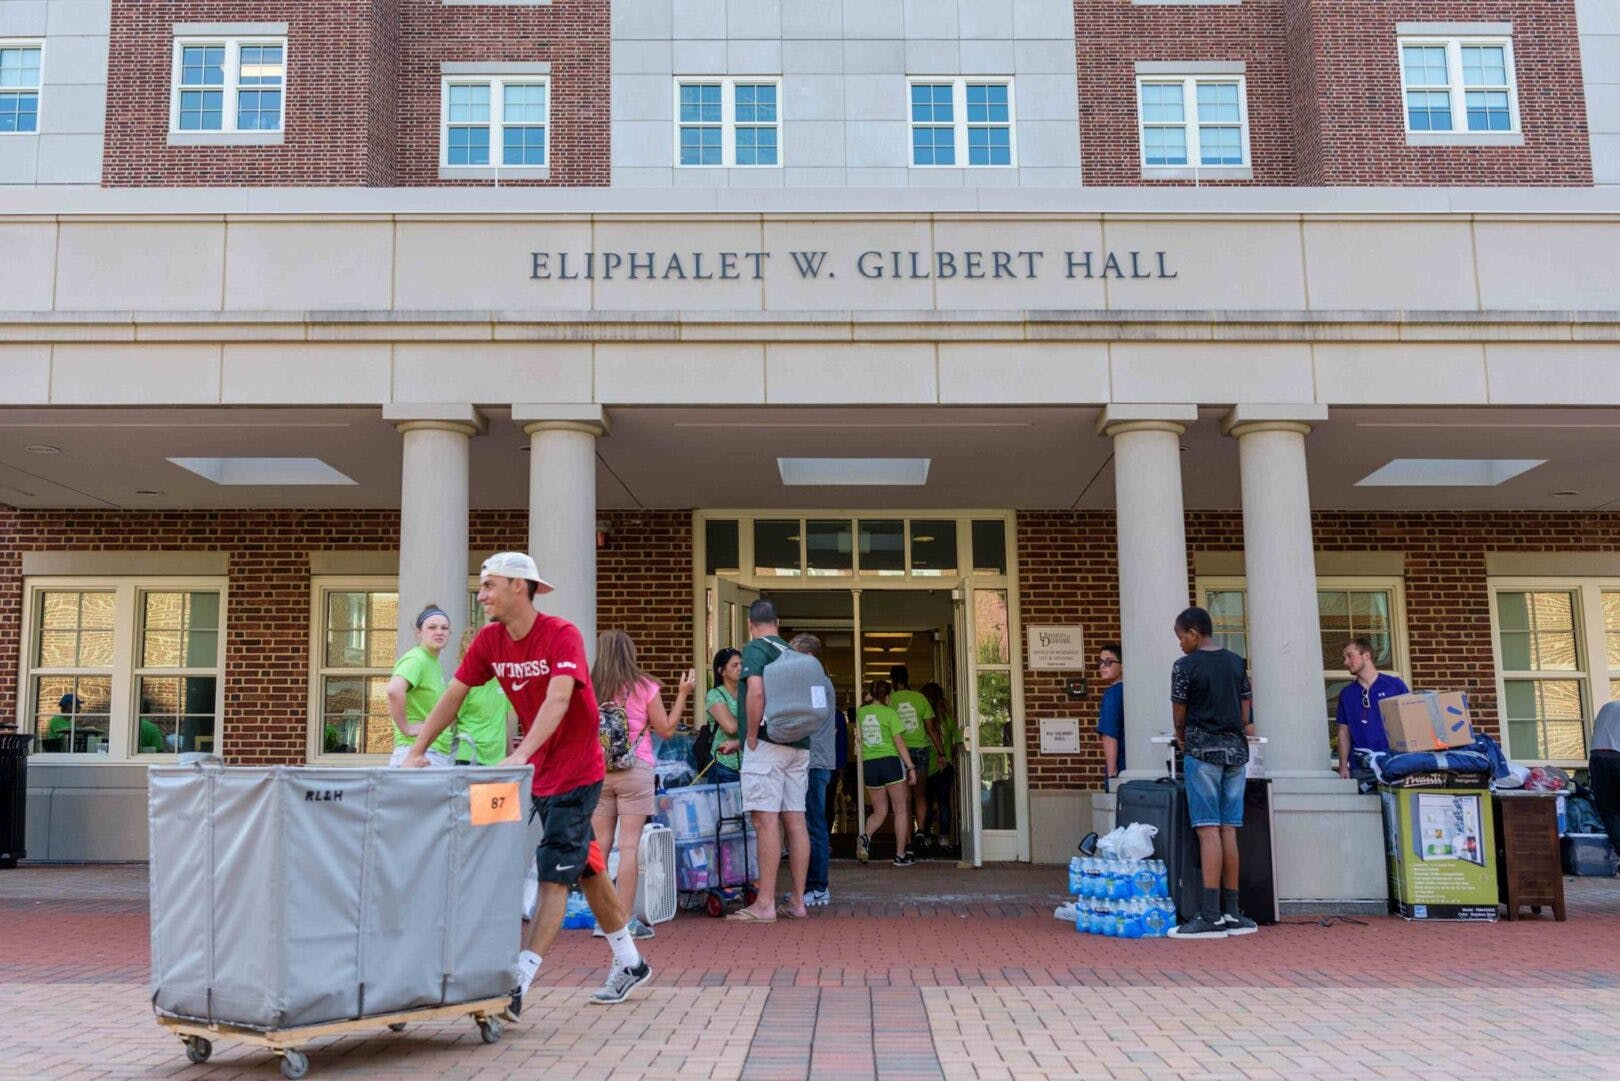 University of Delaware students move into Gilbert Hall in pre-COVID-19 days.